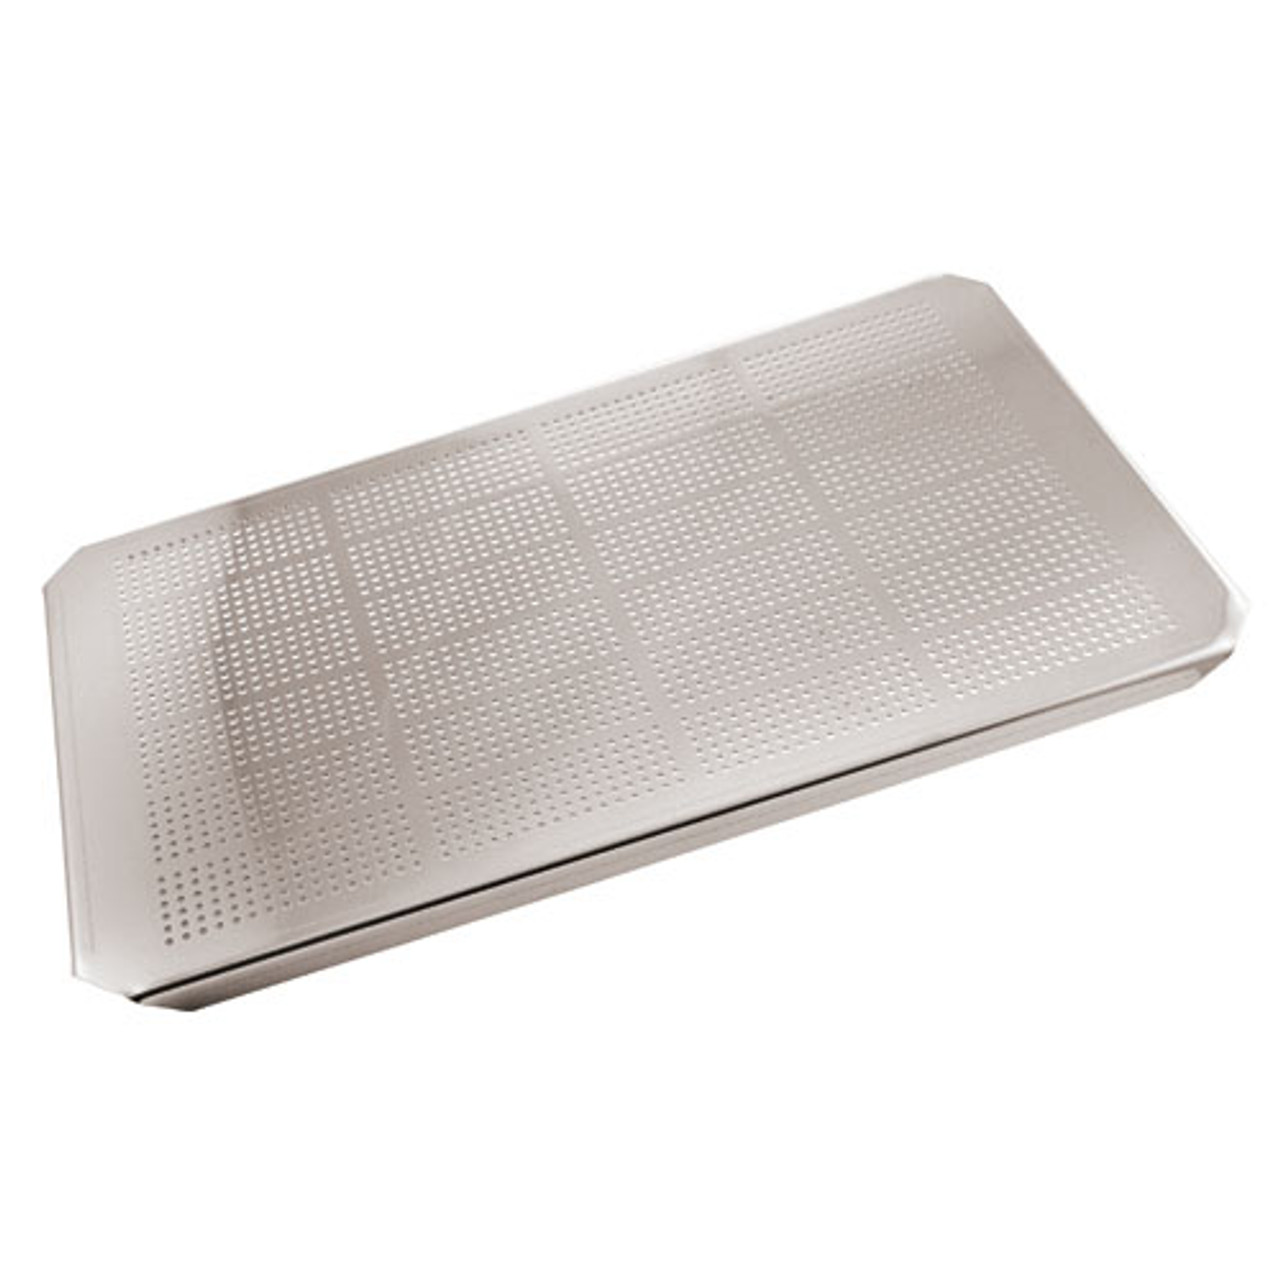 Hotel Pan 1/1 Drainer Plate,